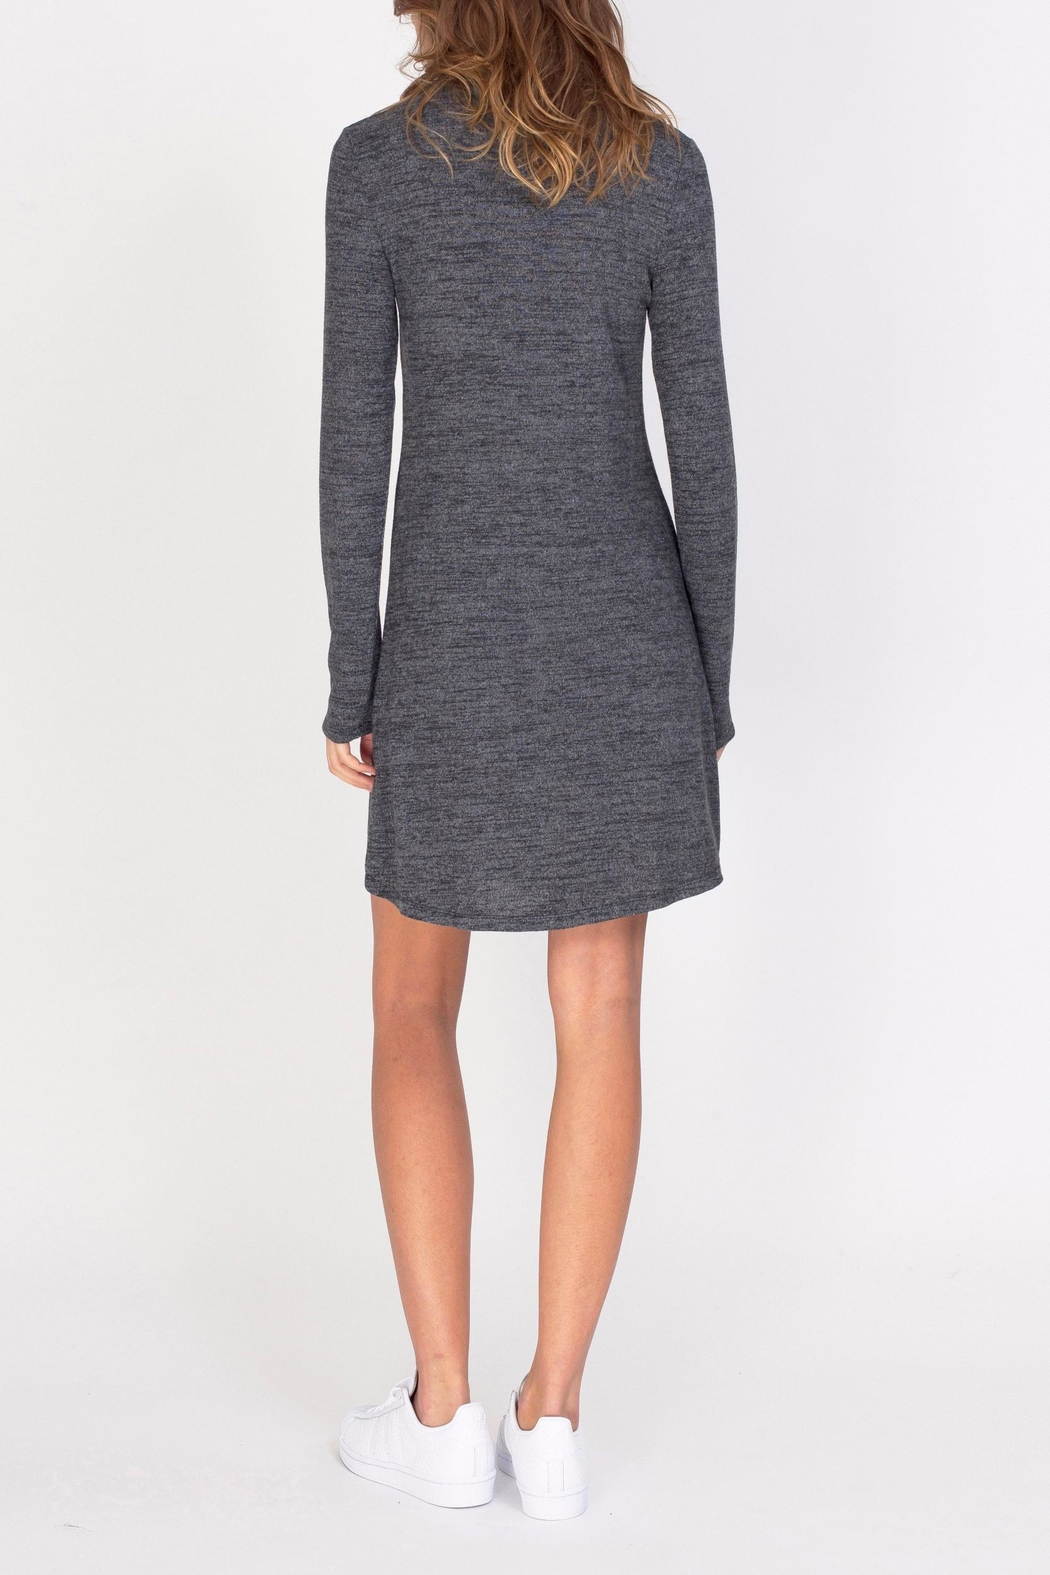 Gentle Fawn Soft Turtleneck Dress - Side Cropped Image